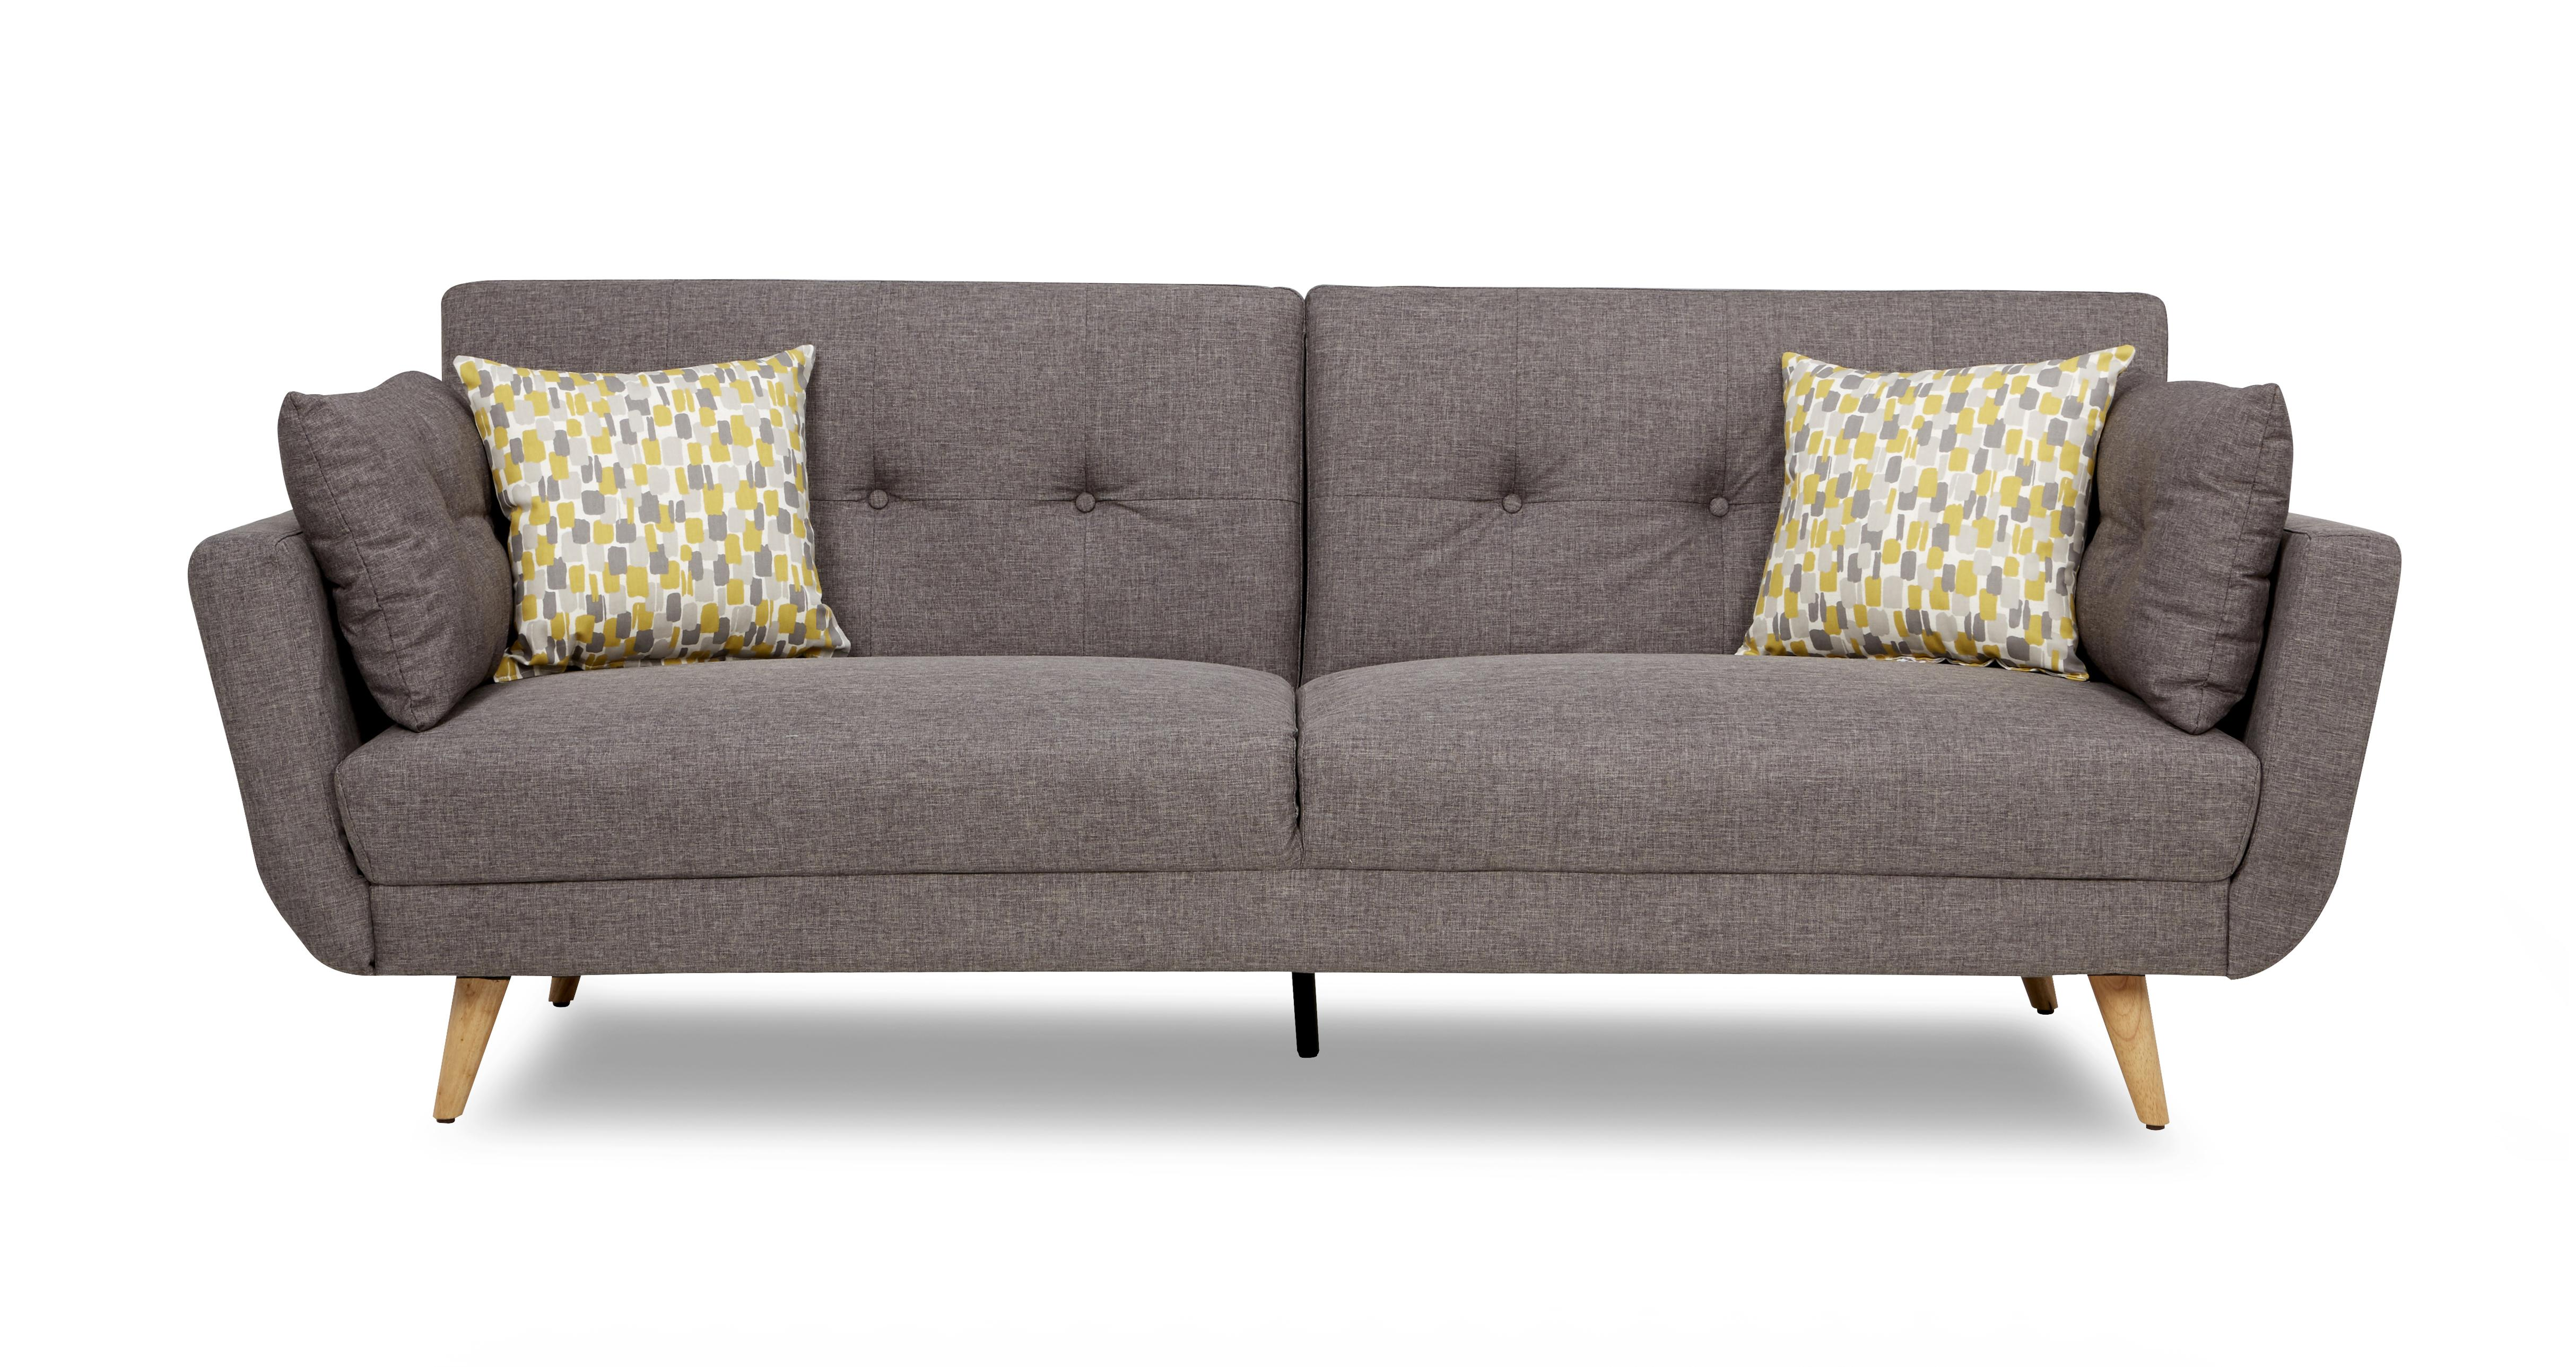 GXD Inca Sofabed